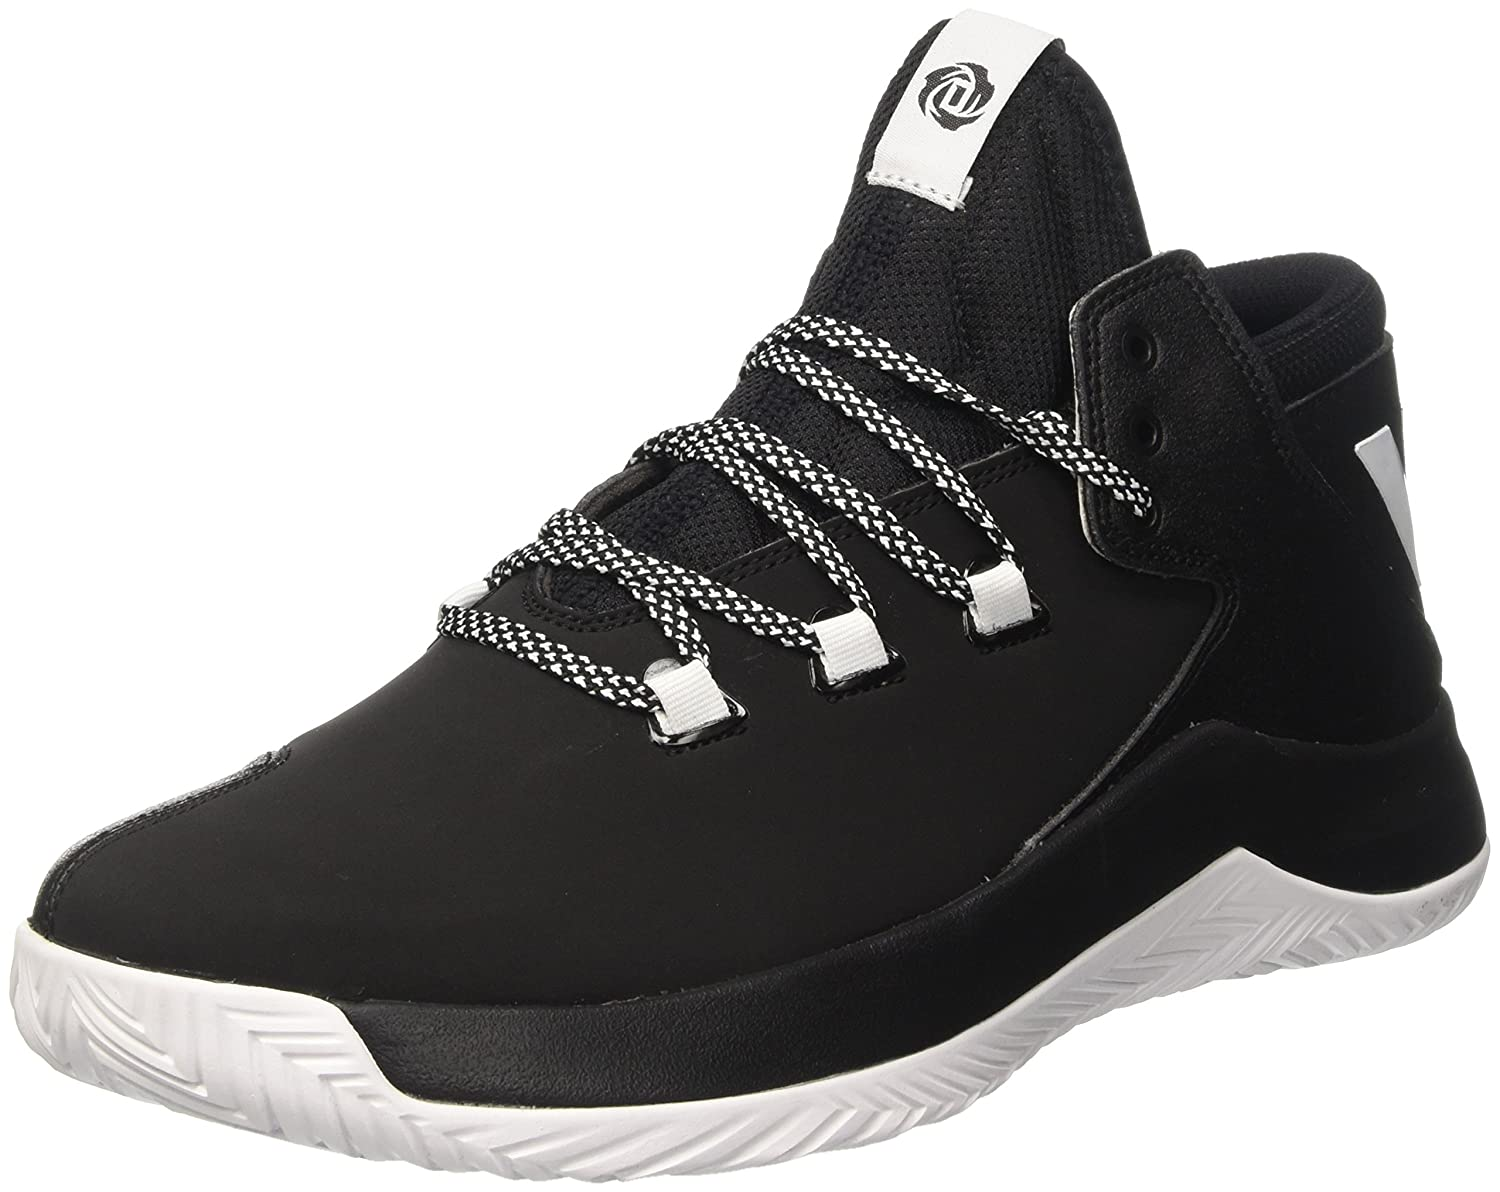 half off 8185a 7b7fc Amazon.com  adidas D Rose Menace 2 Mens Basketball SneakersShoes   Basketball